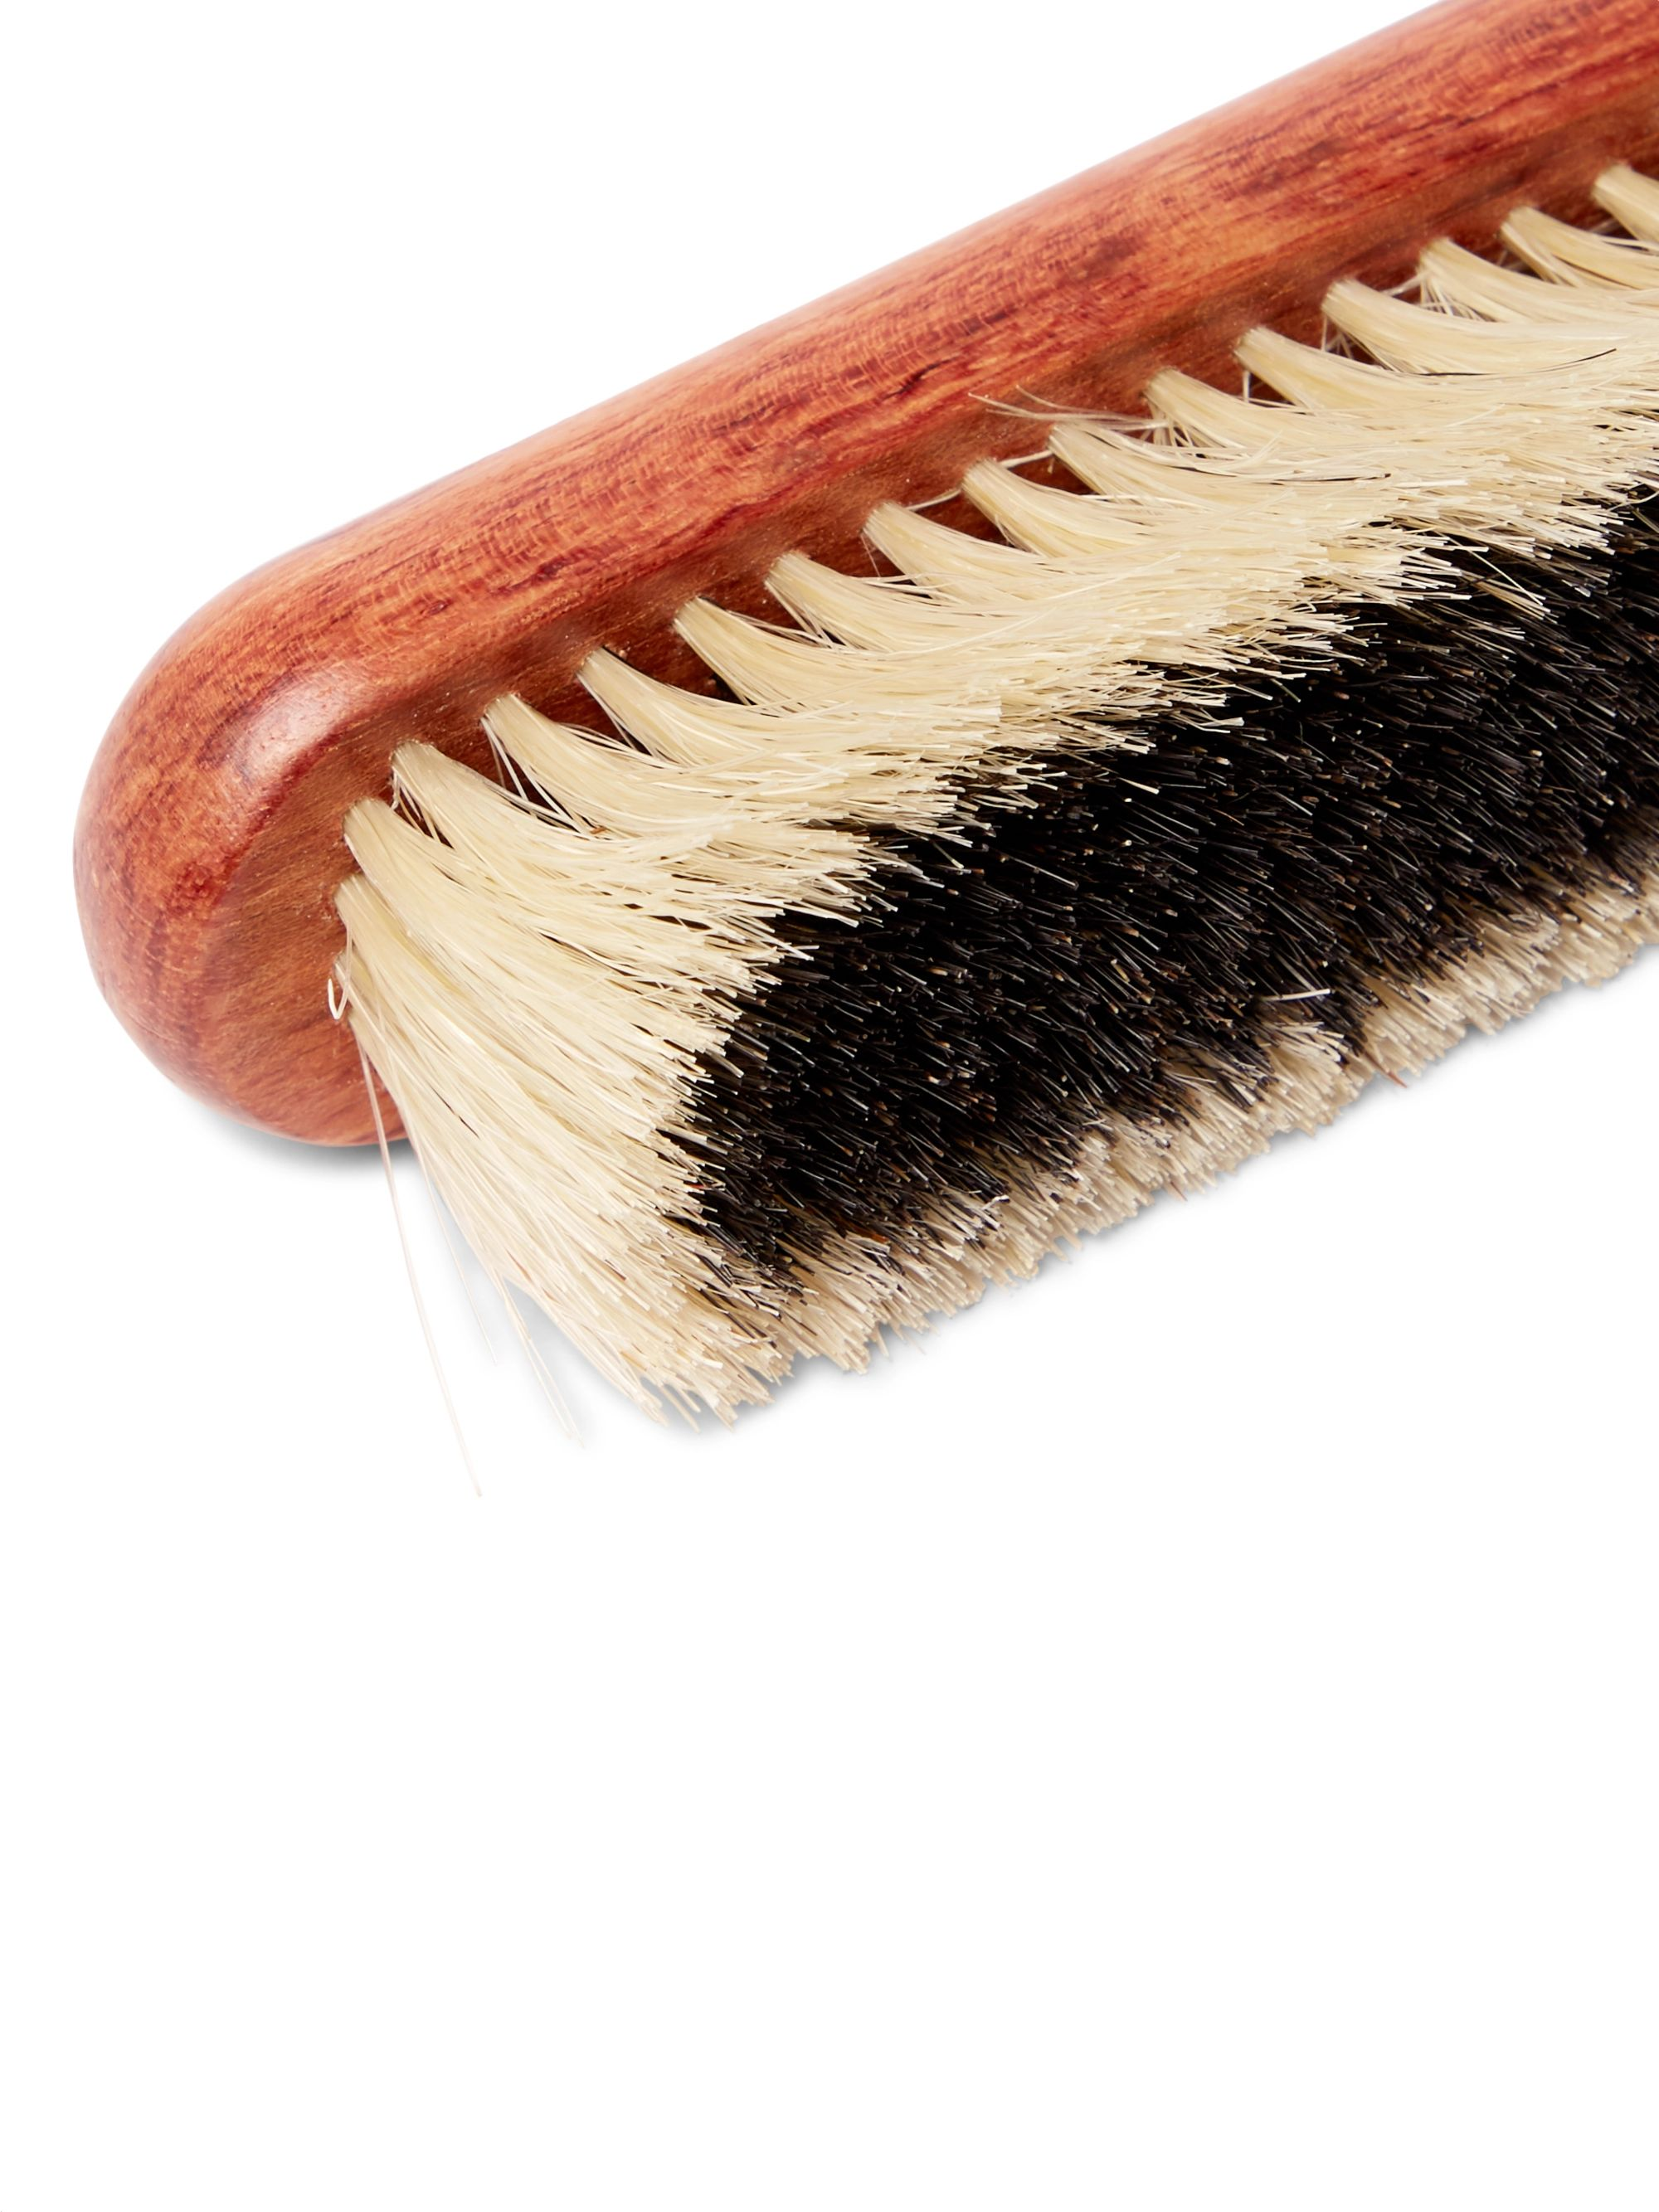 Steamery Rosewood Clothes Brush